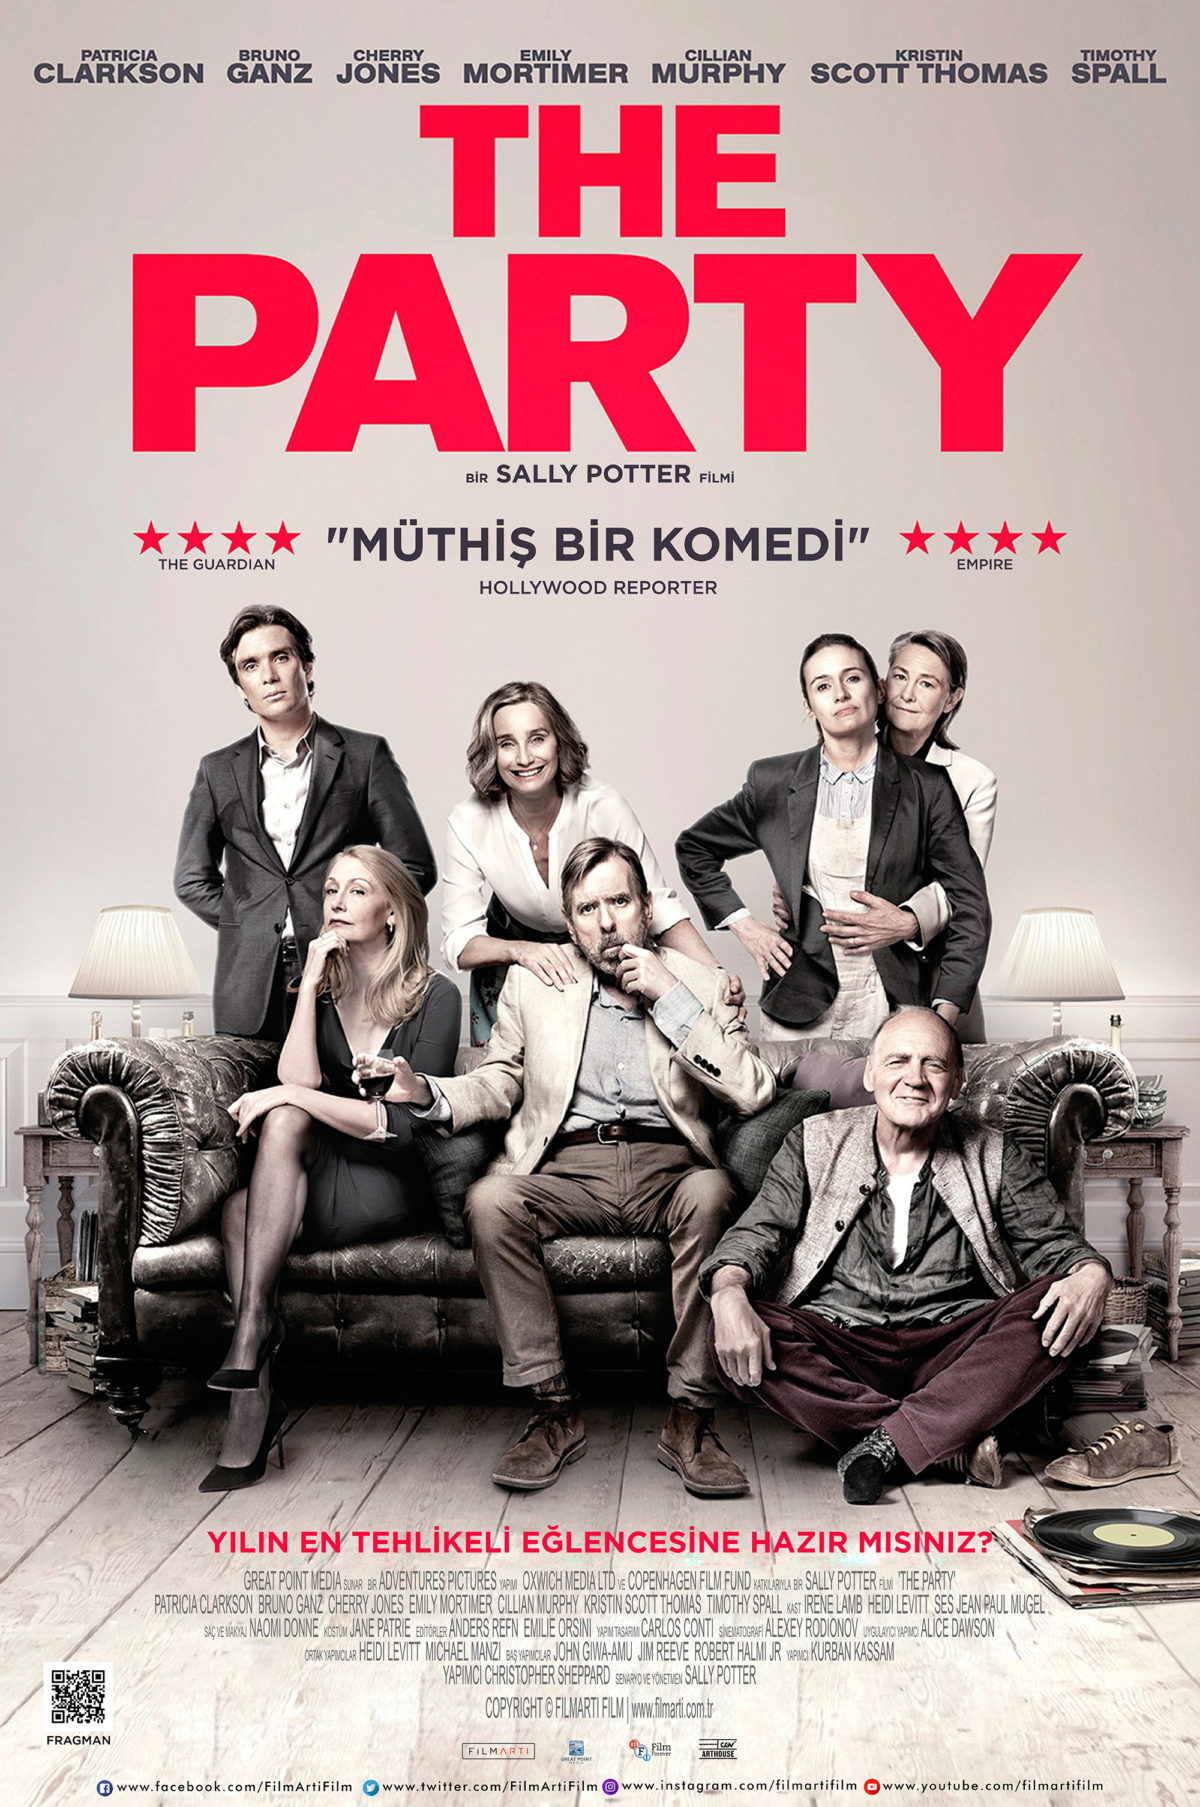 THEPARTY_POSTER2-1200x1807